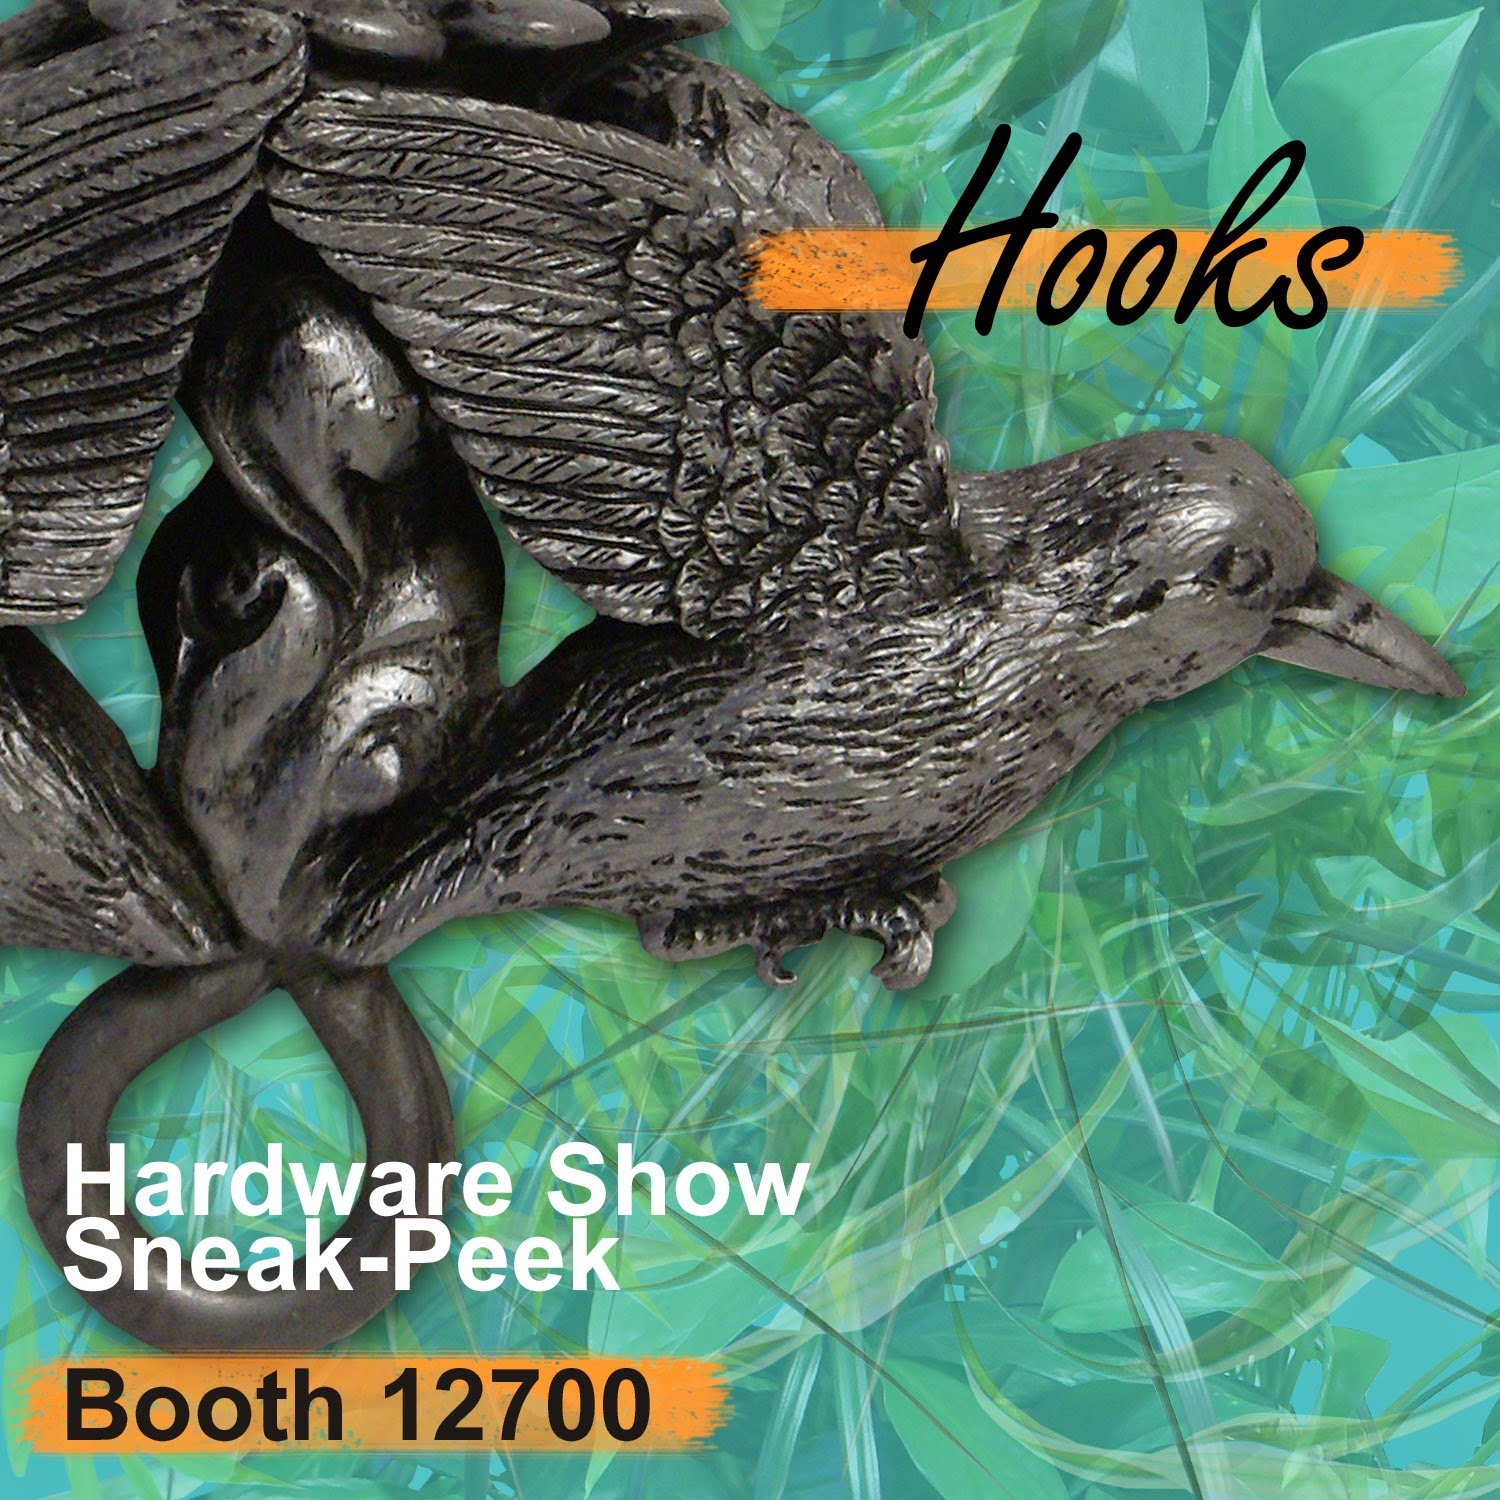 Hardware Show Sneak-Peek - Ceiling Hooks Visit Booth 12700